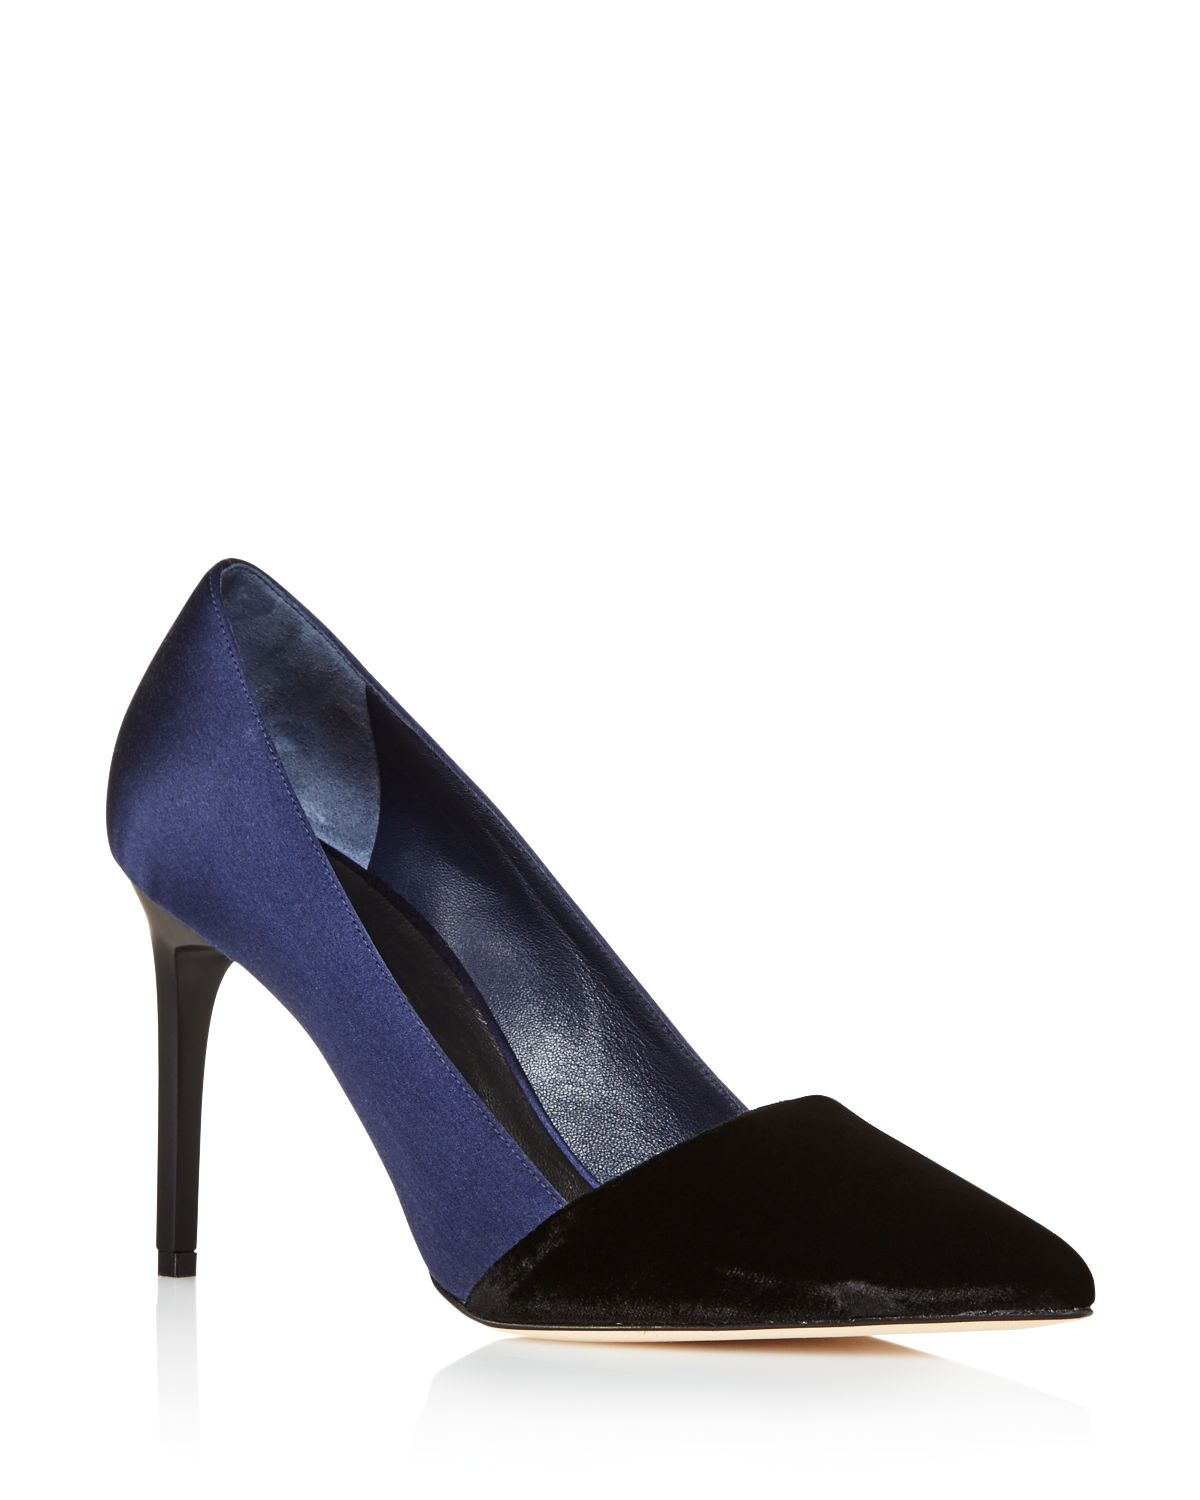 Oscar de la Renta Vik Velvet and Satin Color Block Pointed Toe Pumps